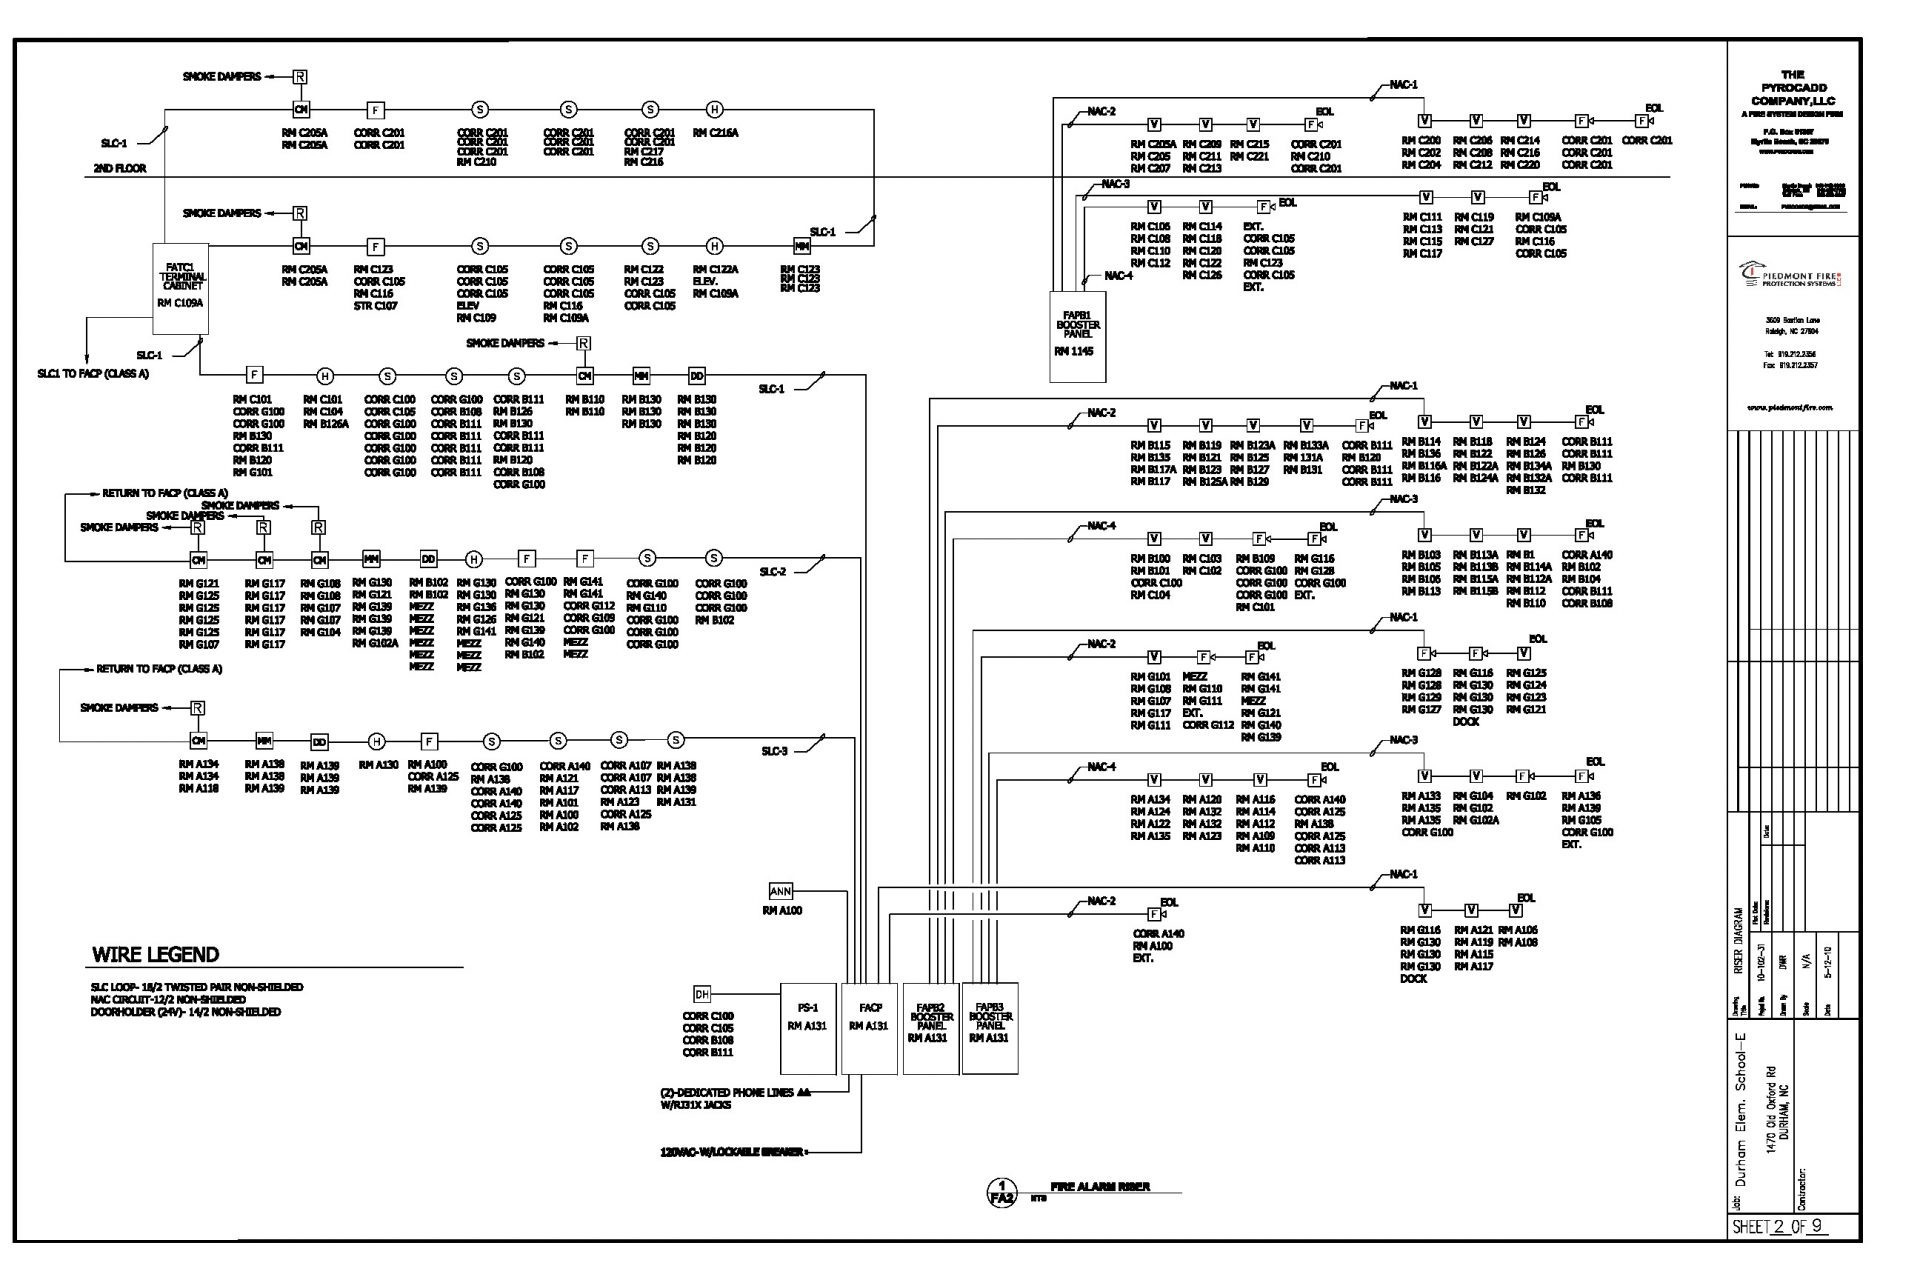 smoke detector wiring diagram Collection-Wiring Diagram Addressable Fire Alarm Refrence Smoke Detector Wiring Diagram Pdf Fresh Addressable Fire Alarm 8-d